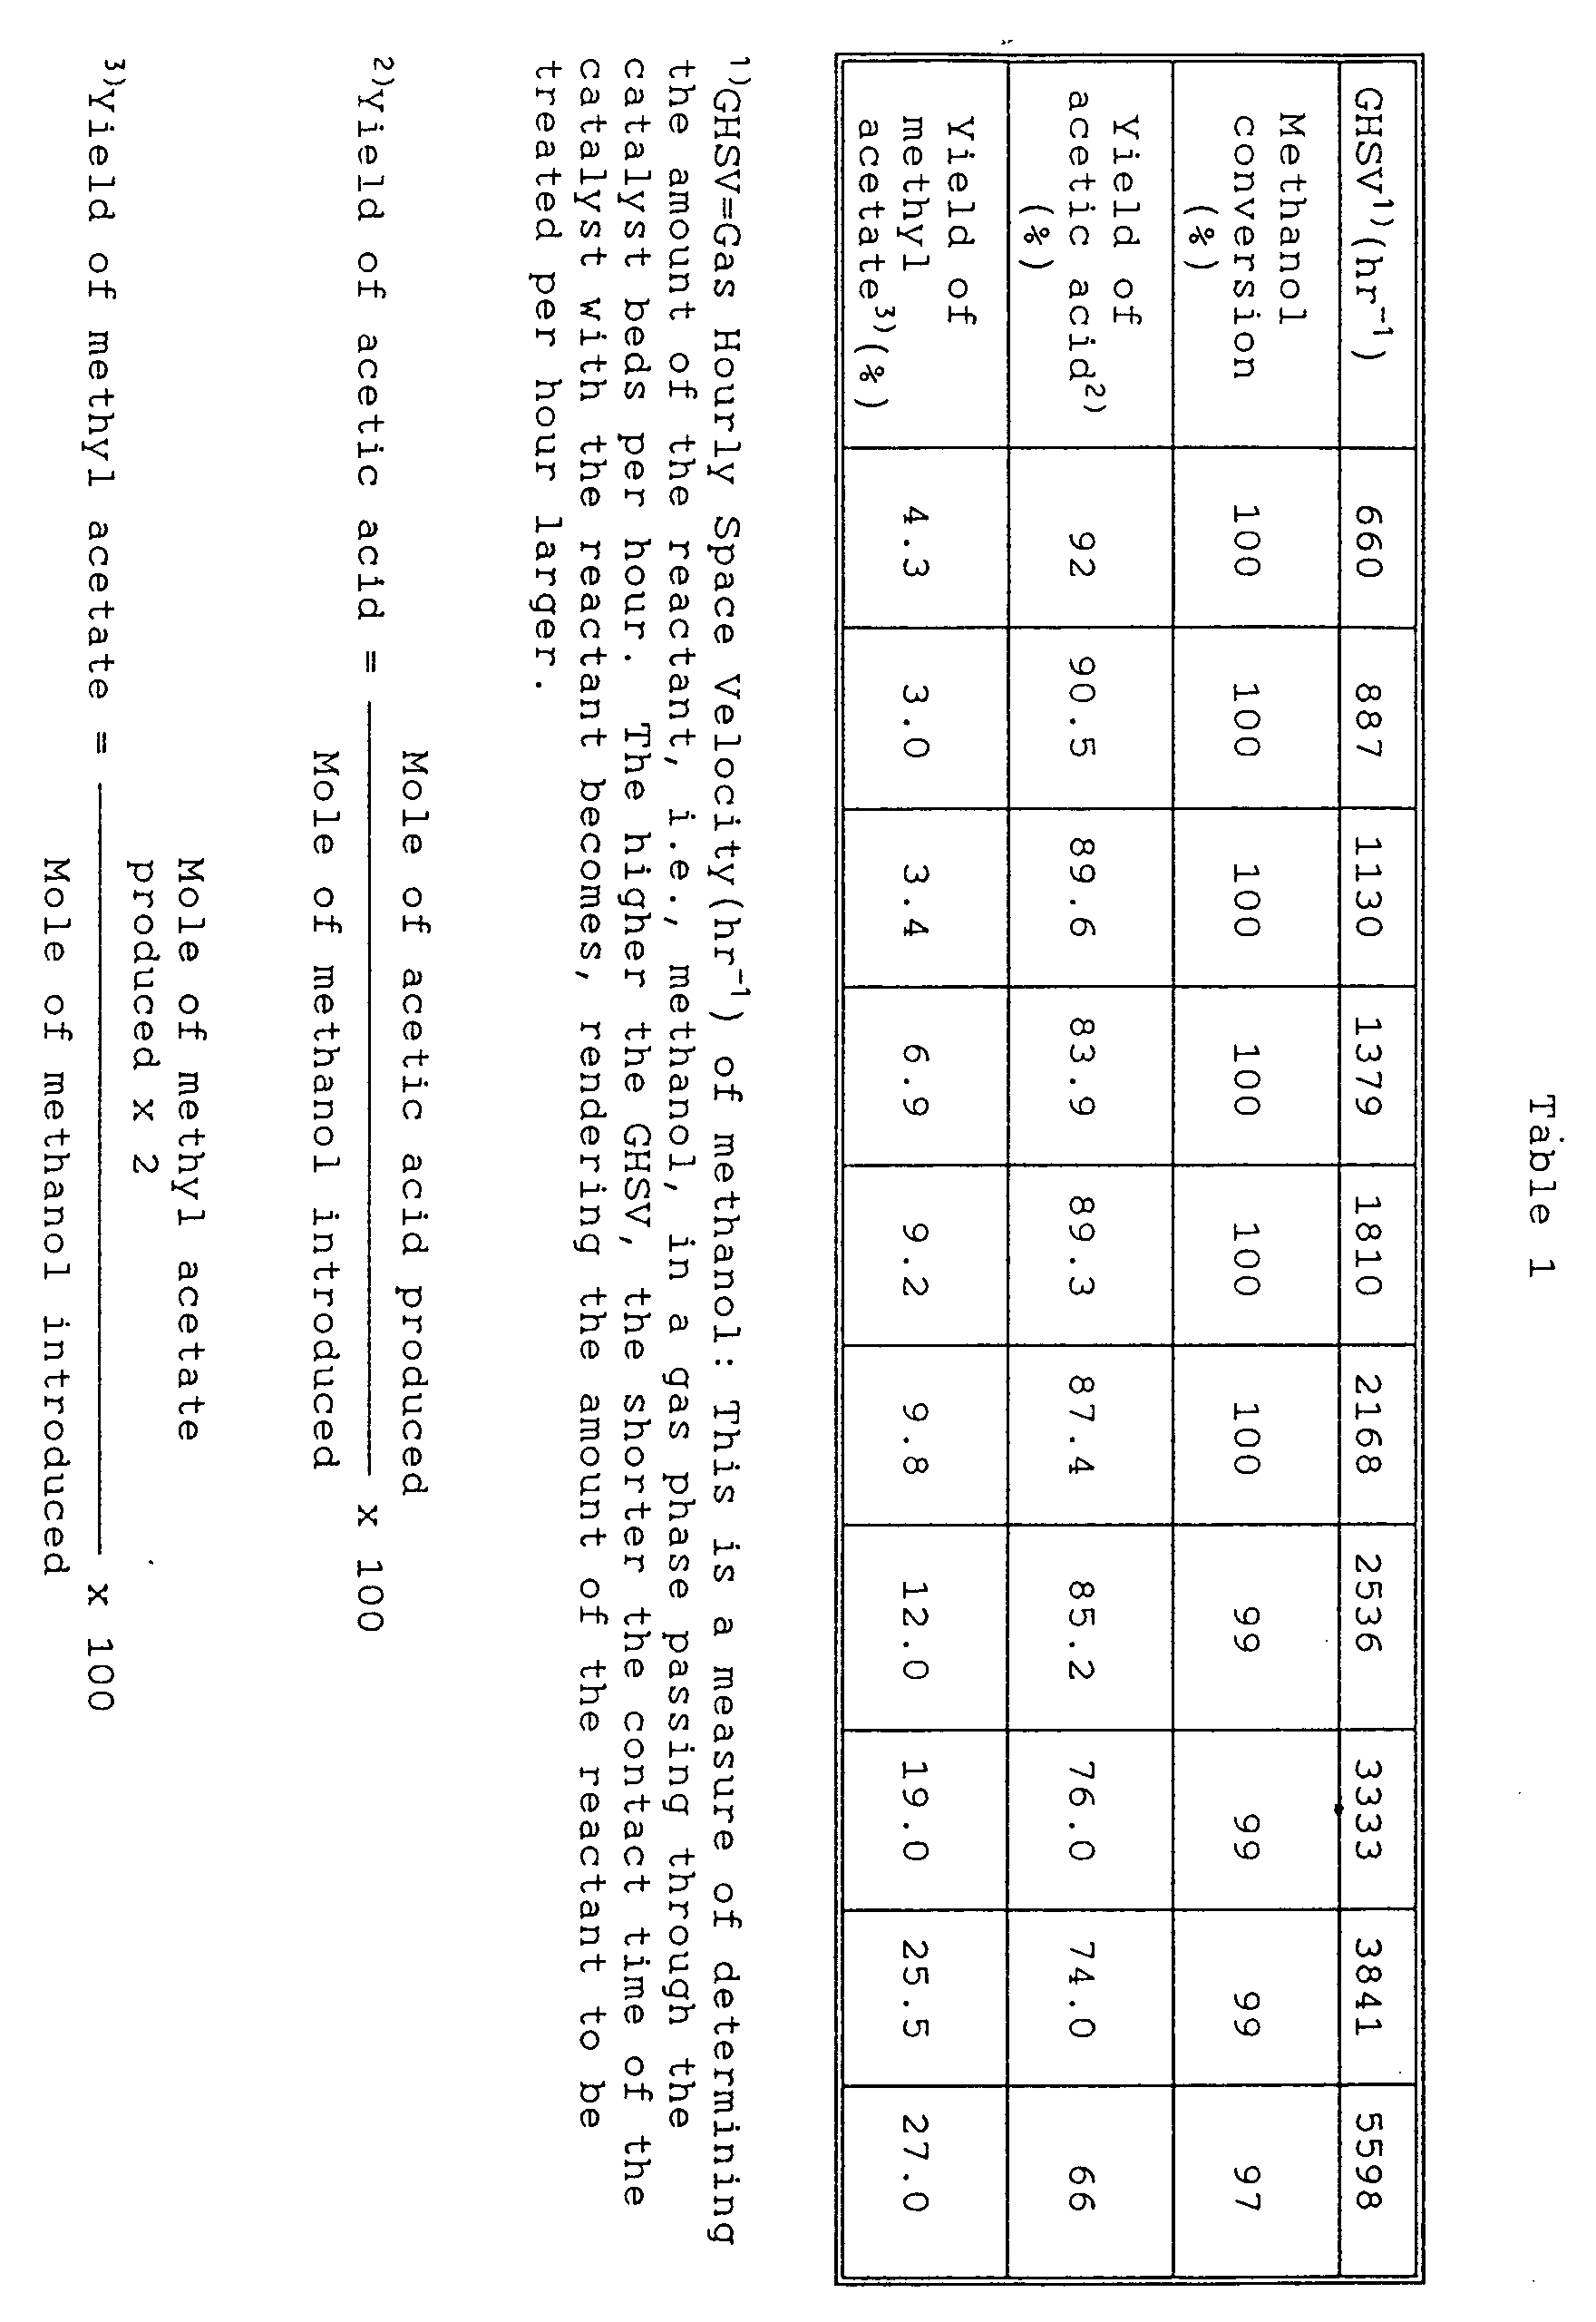 Ep0636599a1 Process For The Carbonylation Of Methanol To Form